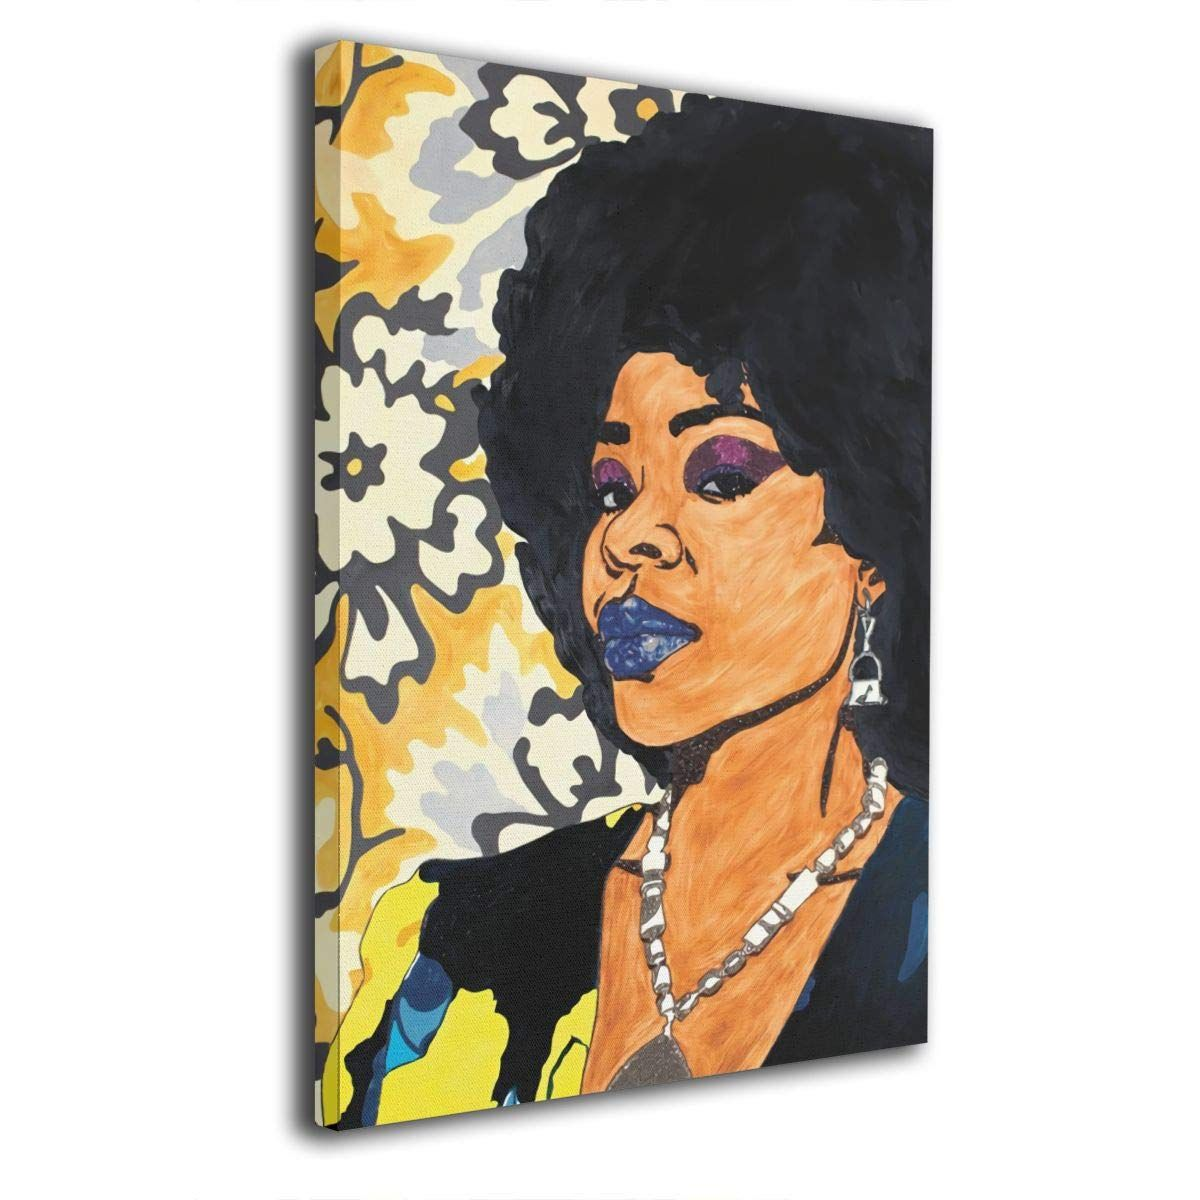 Amazon Com African American Woman 8 X12 Painting Canvas Wall Art Squidward Paintings Abstract Modern Style Art Pop Art Animals Modern Art Paintings Abstract